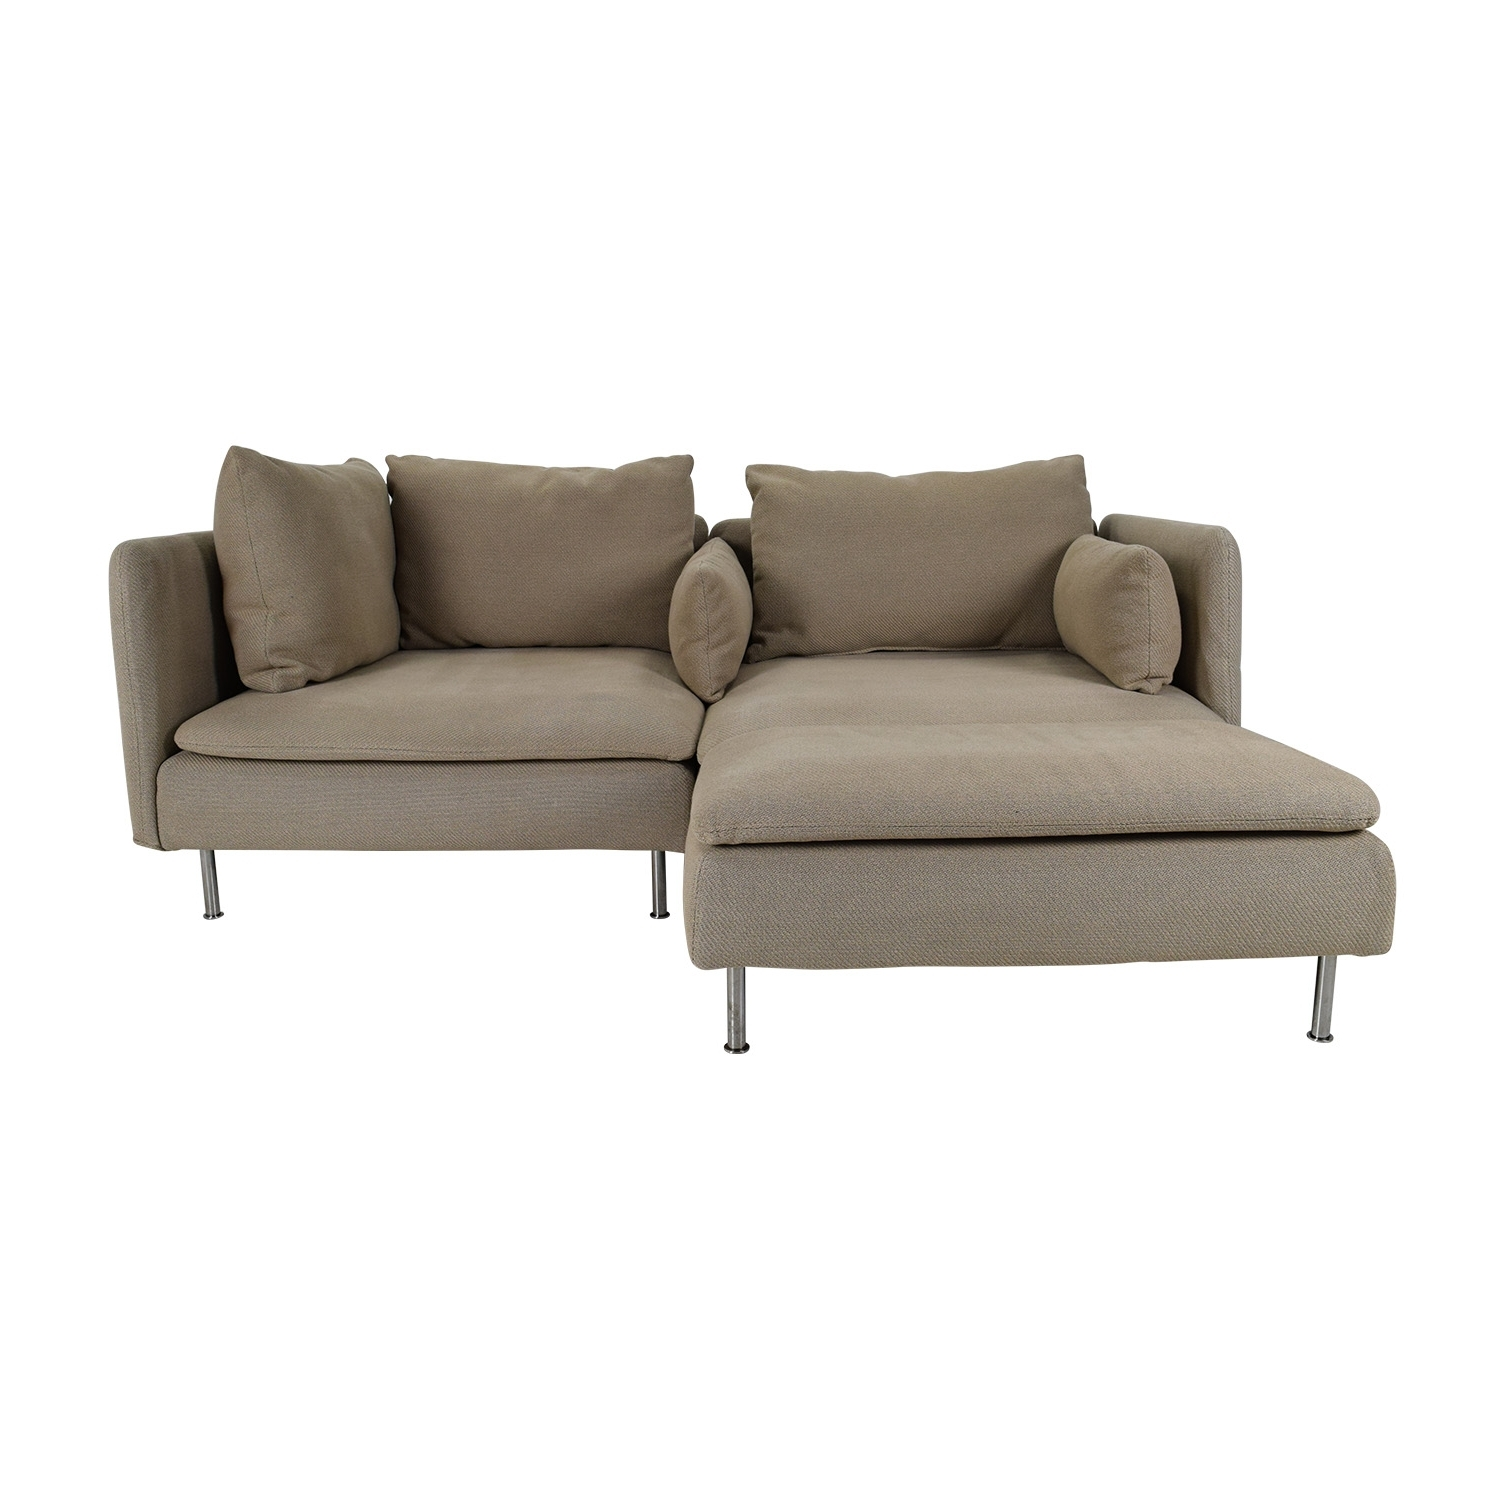 [%50% Off – Ikea Soderhamn Sectional Sofa / Sofas Inside Most Recent Sectional Sofas At Ikea|sectional Sofas At Ikea Within Fashionable 50% Off – Ikea Soderhamn Sectional Sofa / Sofas|fashionable Sectional Sofas At Ikea With Regard To 50% Off – Ikea Soderhamn Sectional Sofa / Sofas|most Up To Date 50% Off – Ikea Soderhamn Sectional Sofa / Sofas With Regard To Sectional Sofas At Ikea%] (View 6 of 20)